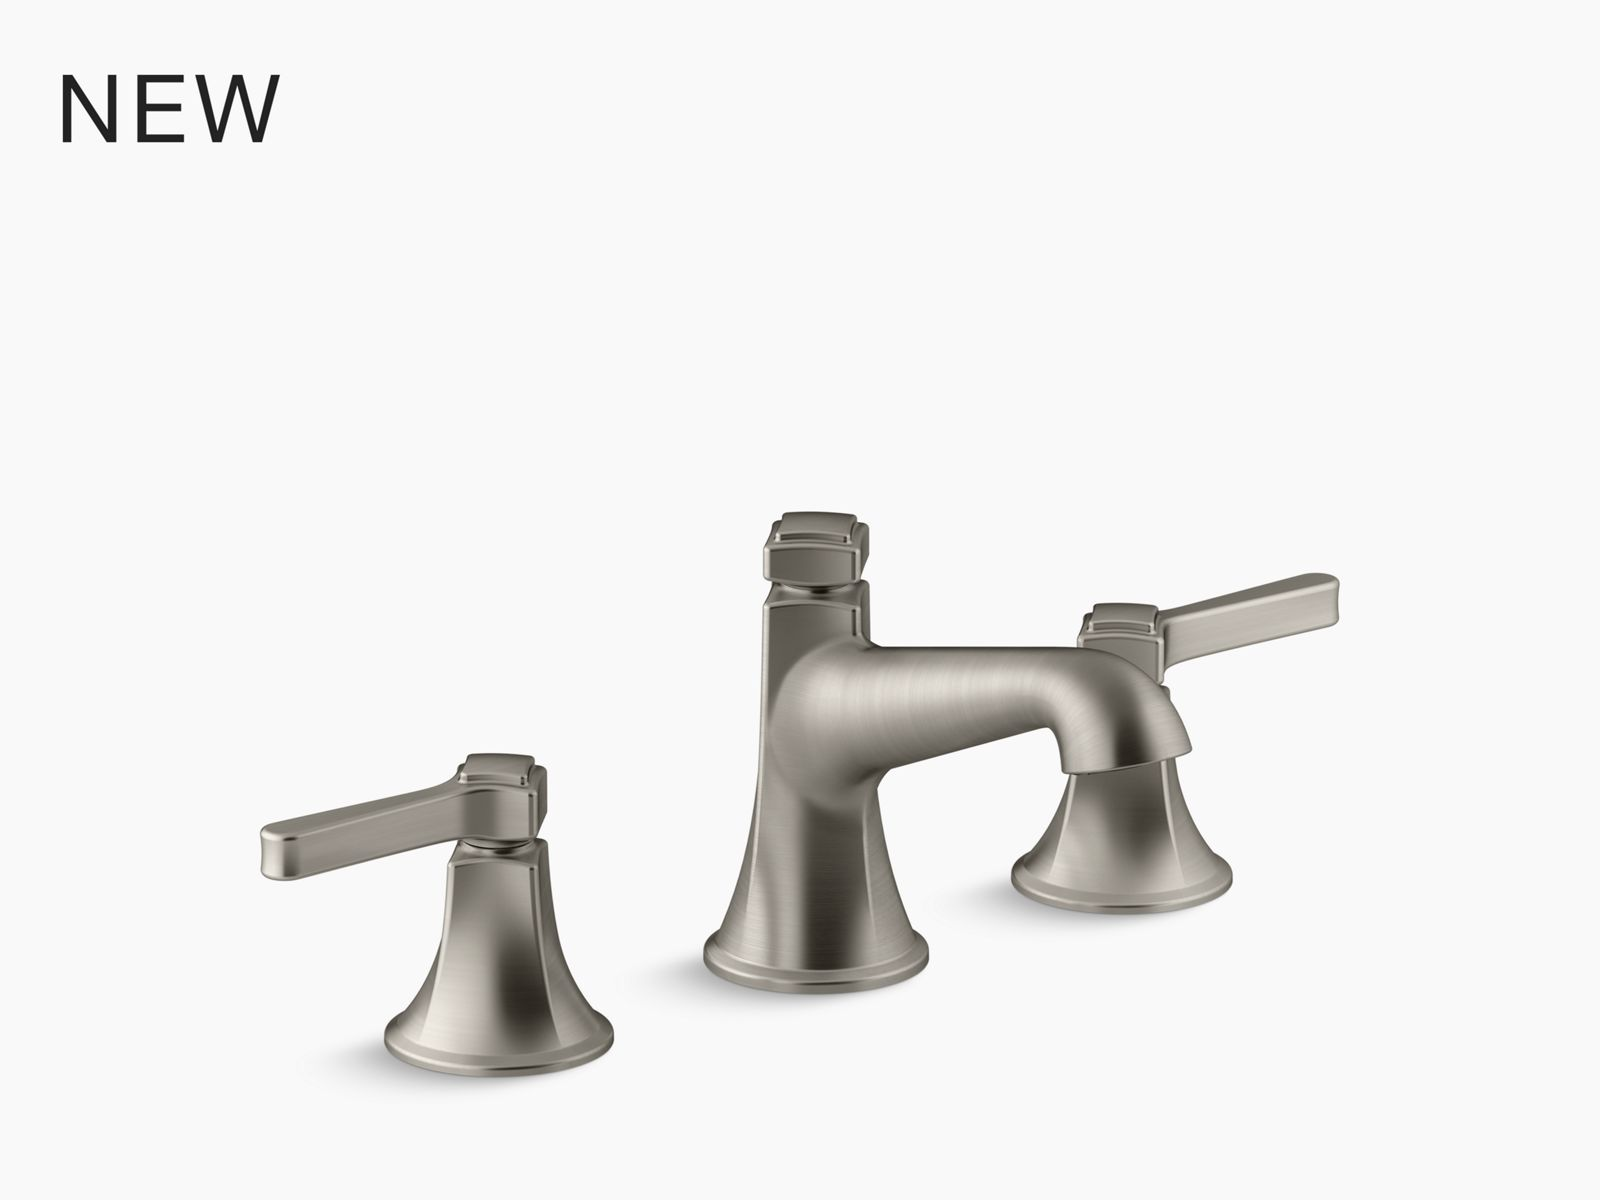 triton bowe cannock 1 2 gpm bathroom sink faucet with 3 11 16 gooseneck spout and lever handles drain not included